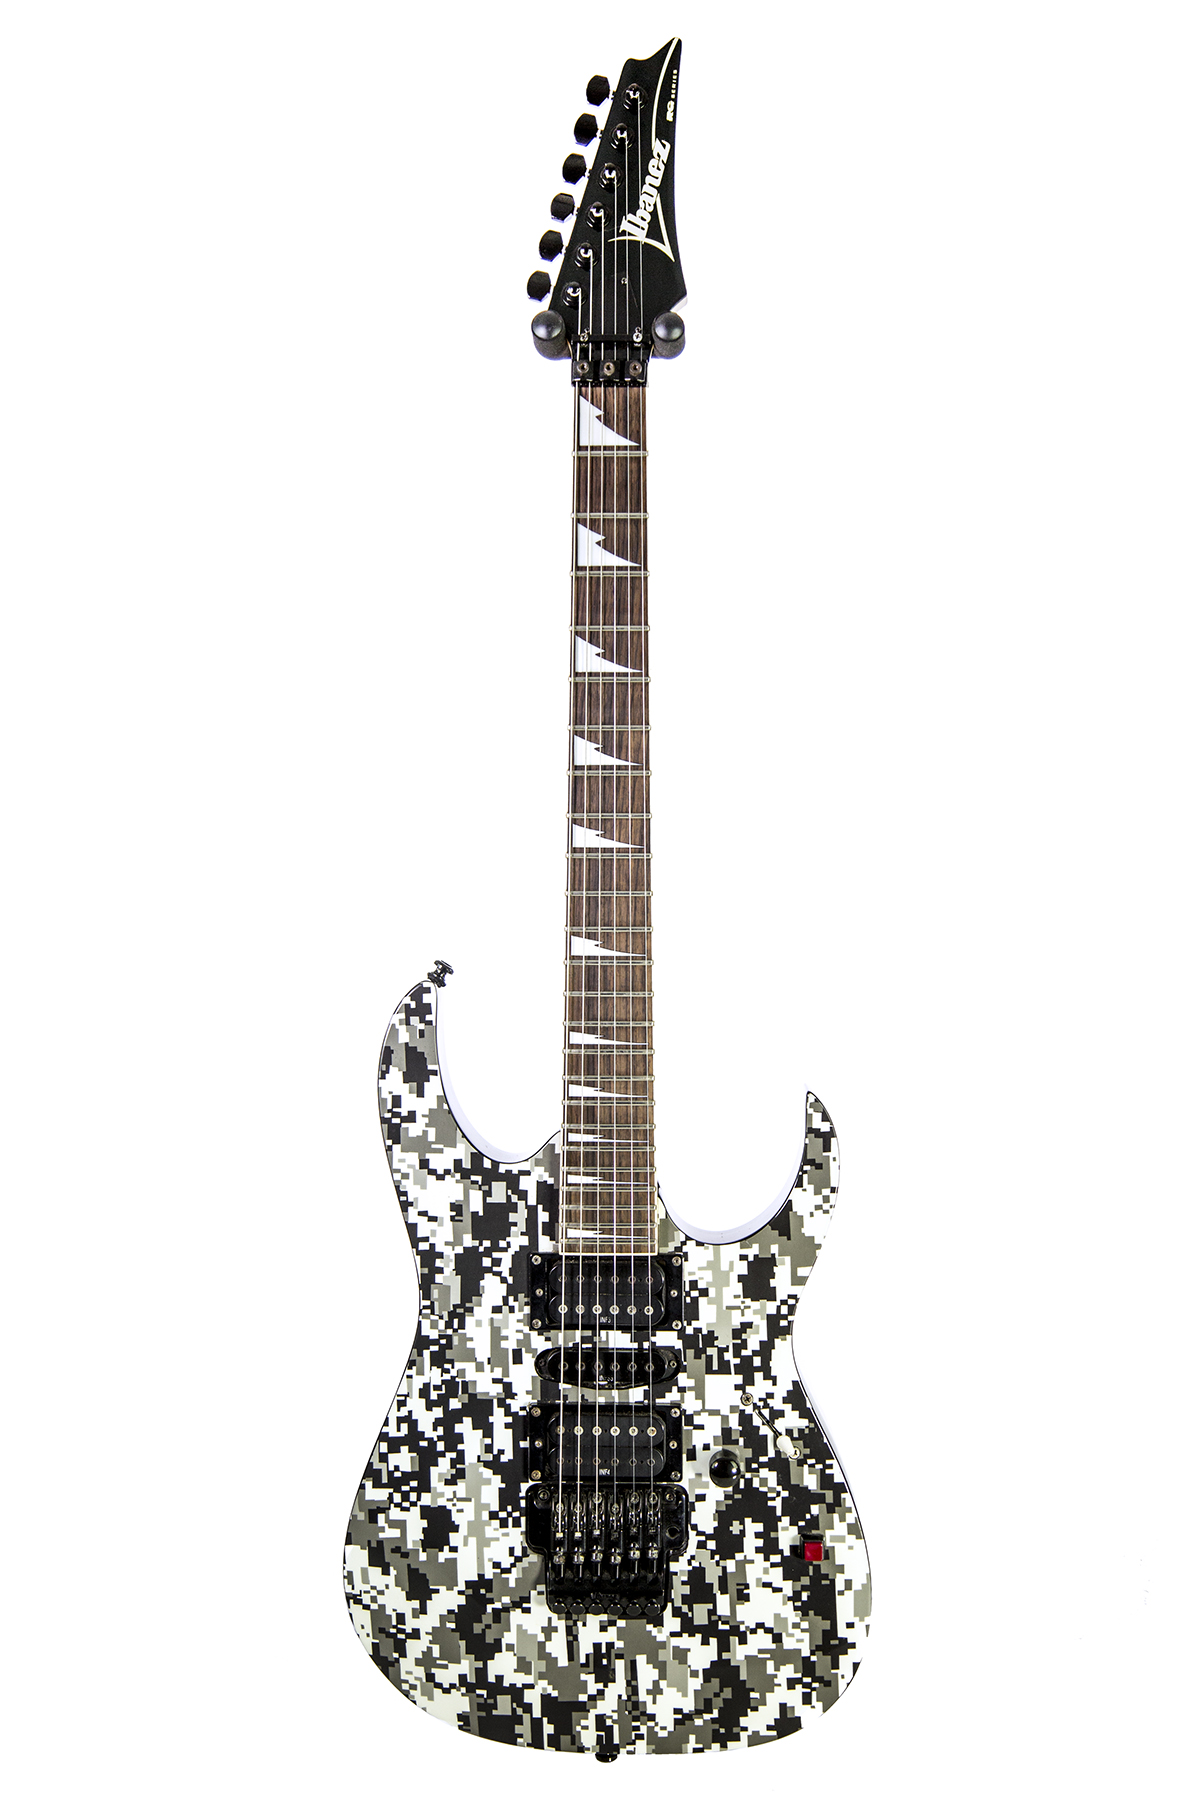 Used Ibanez Rg370dxgp3 Graphic Print Series Digital Camo